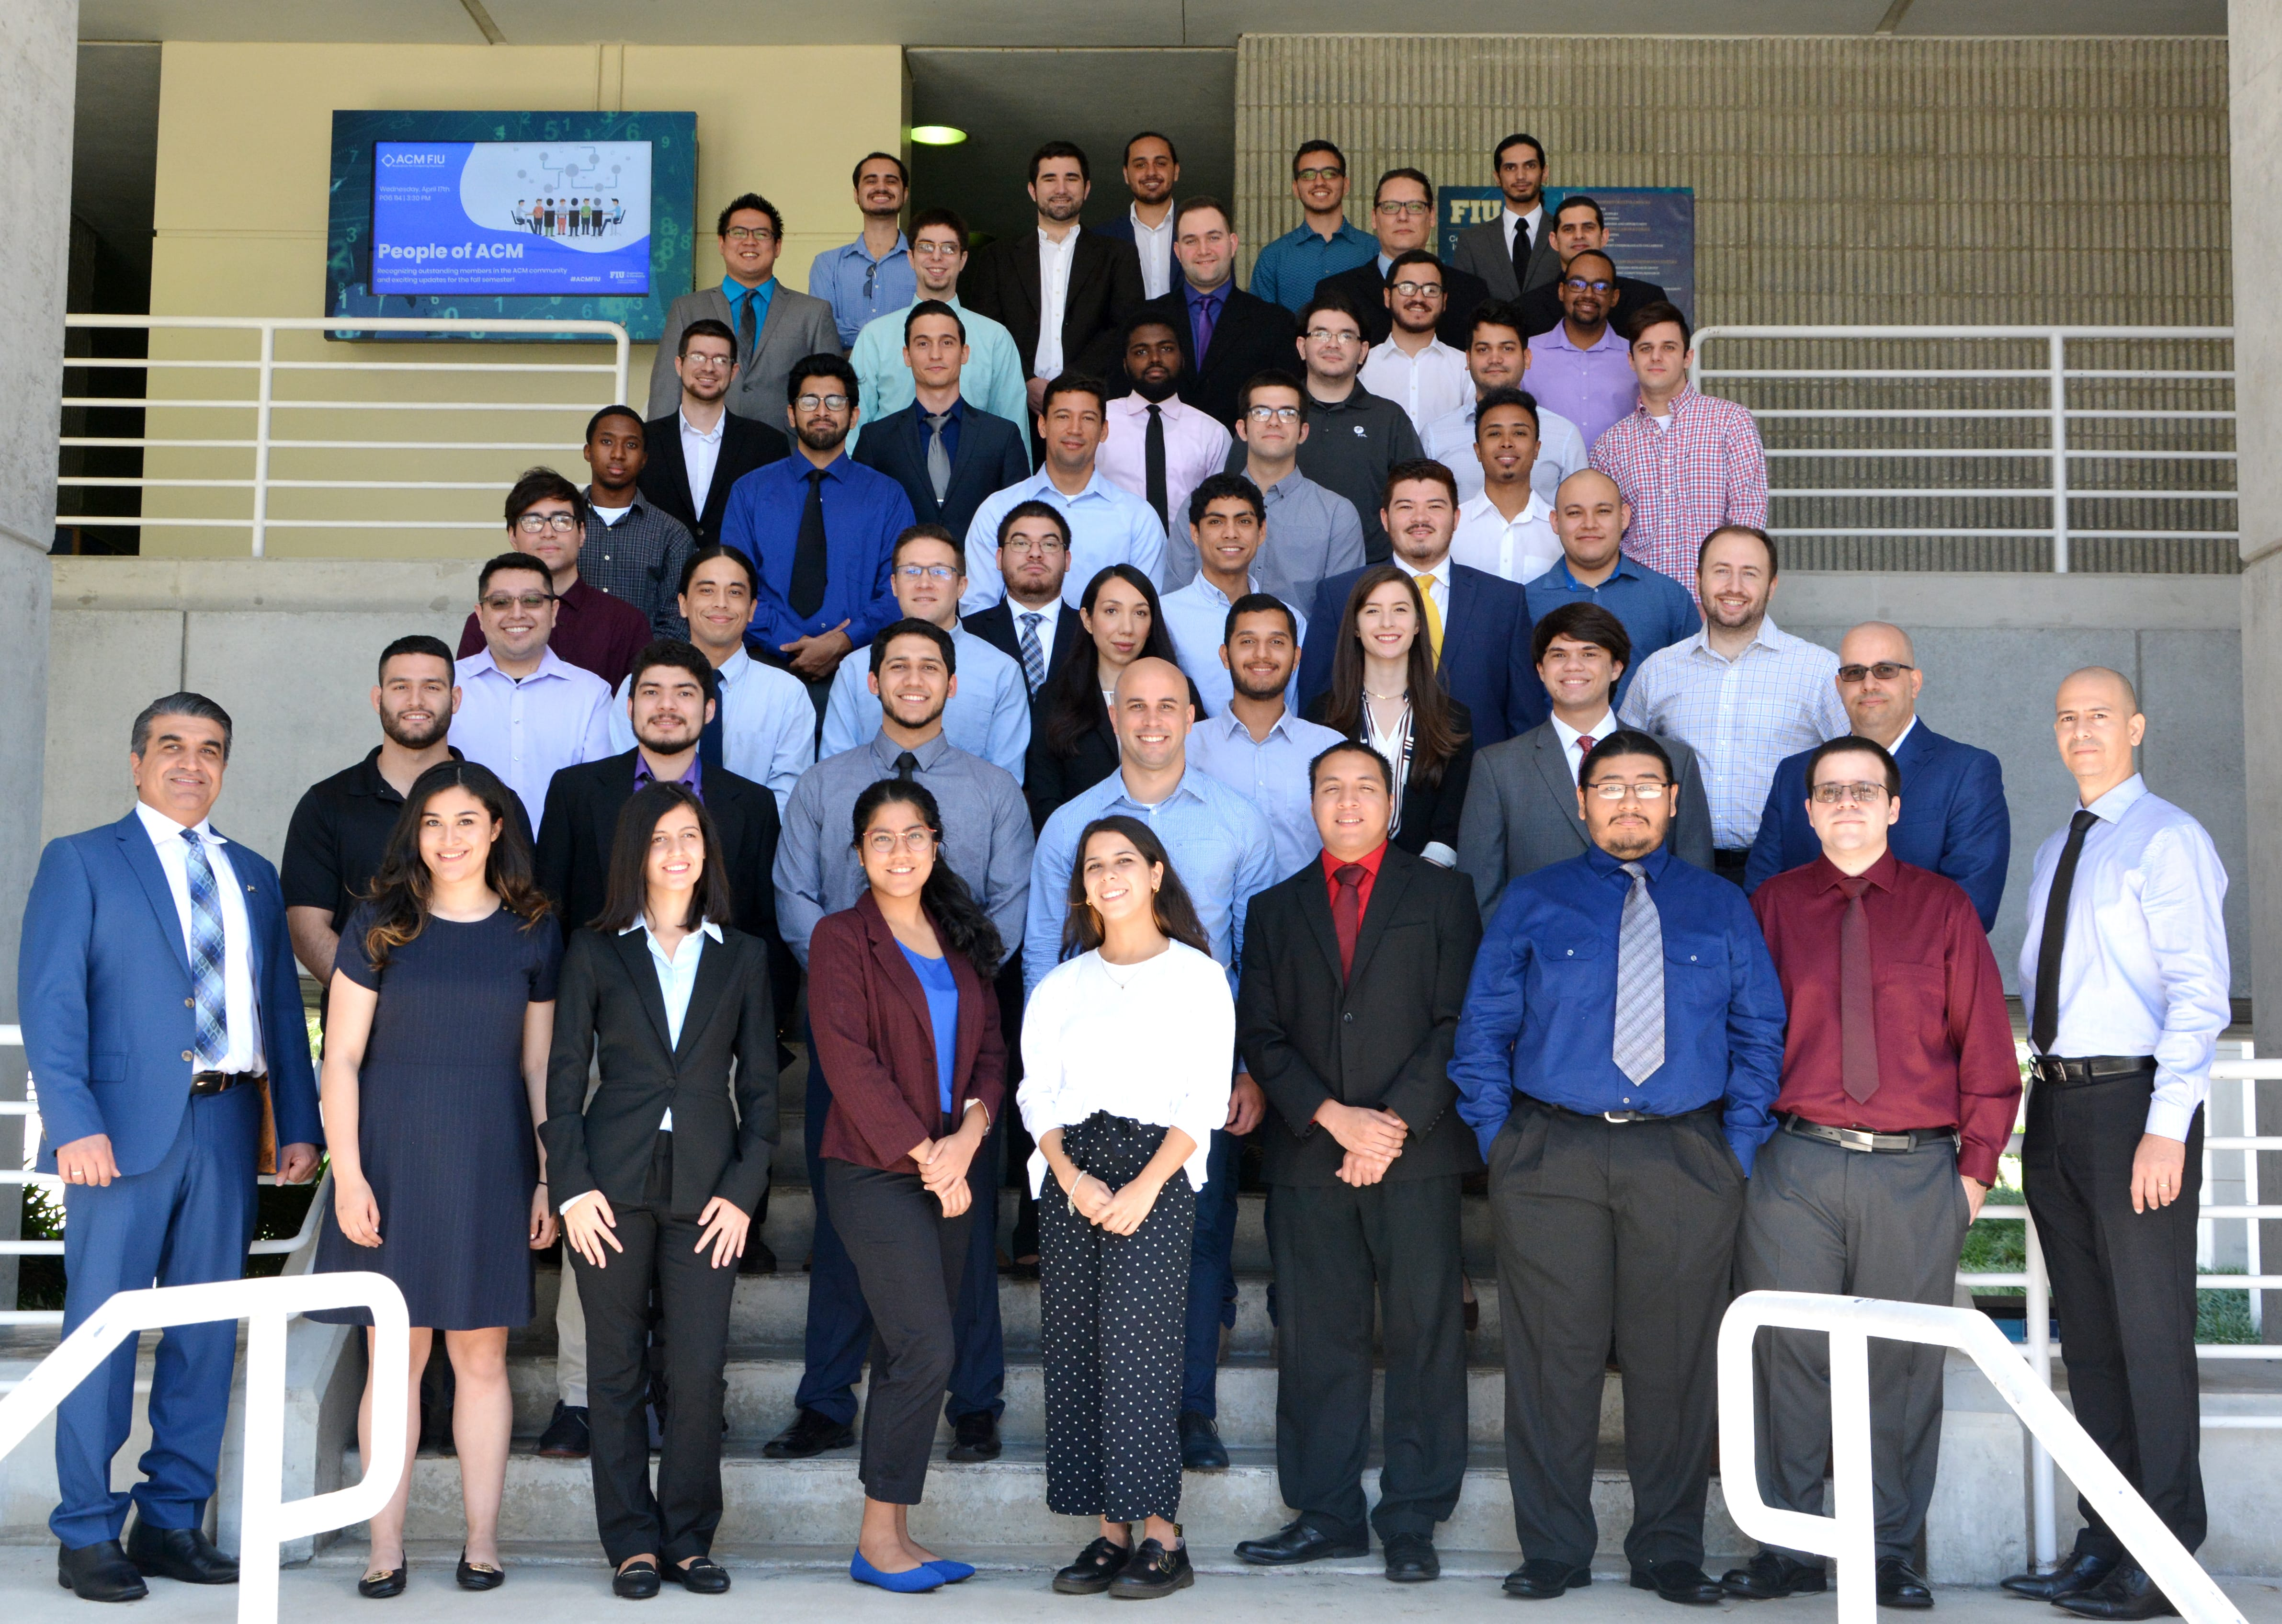 Group photo of Spring 2019 Cohorts